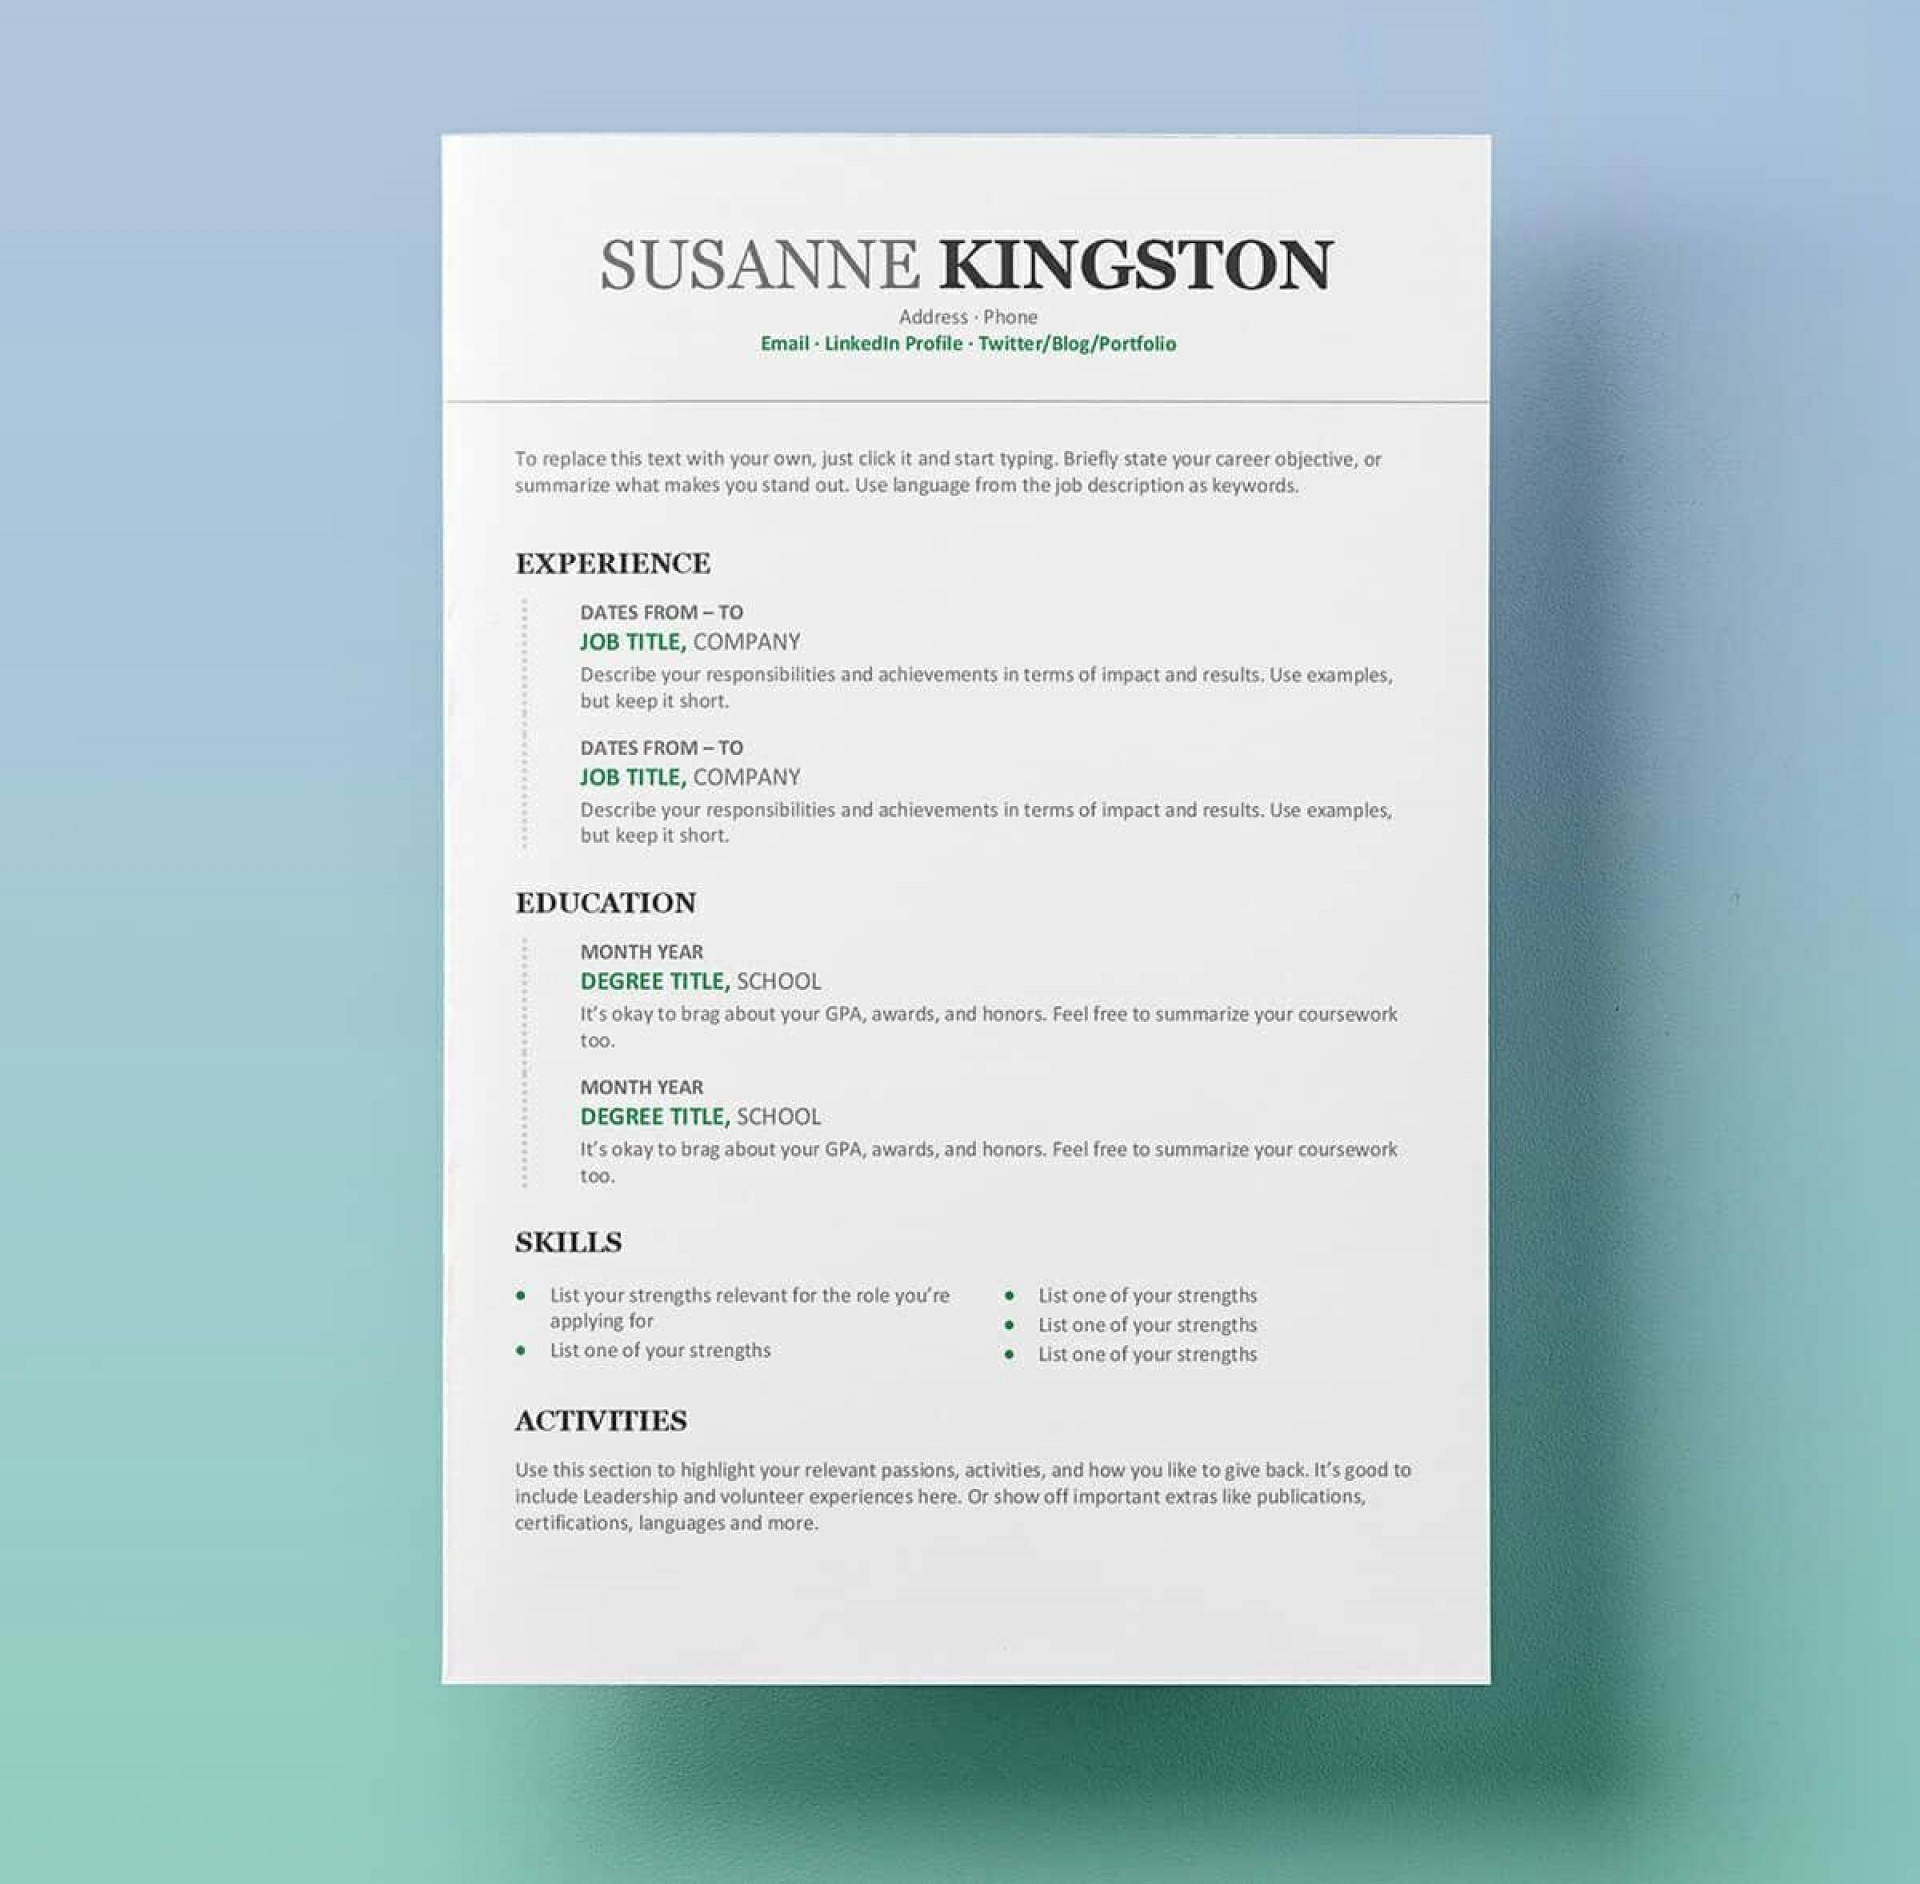 007 Exceptional Resume Template Word Free High Definition  Download India 20201920